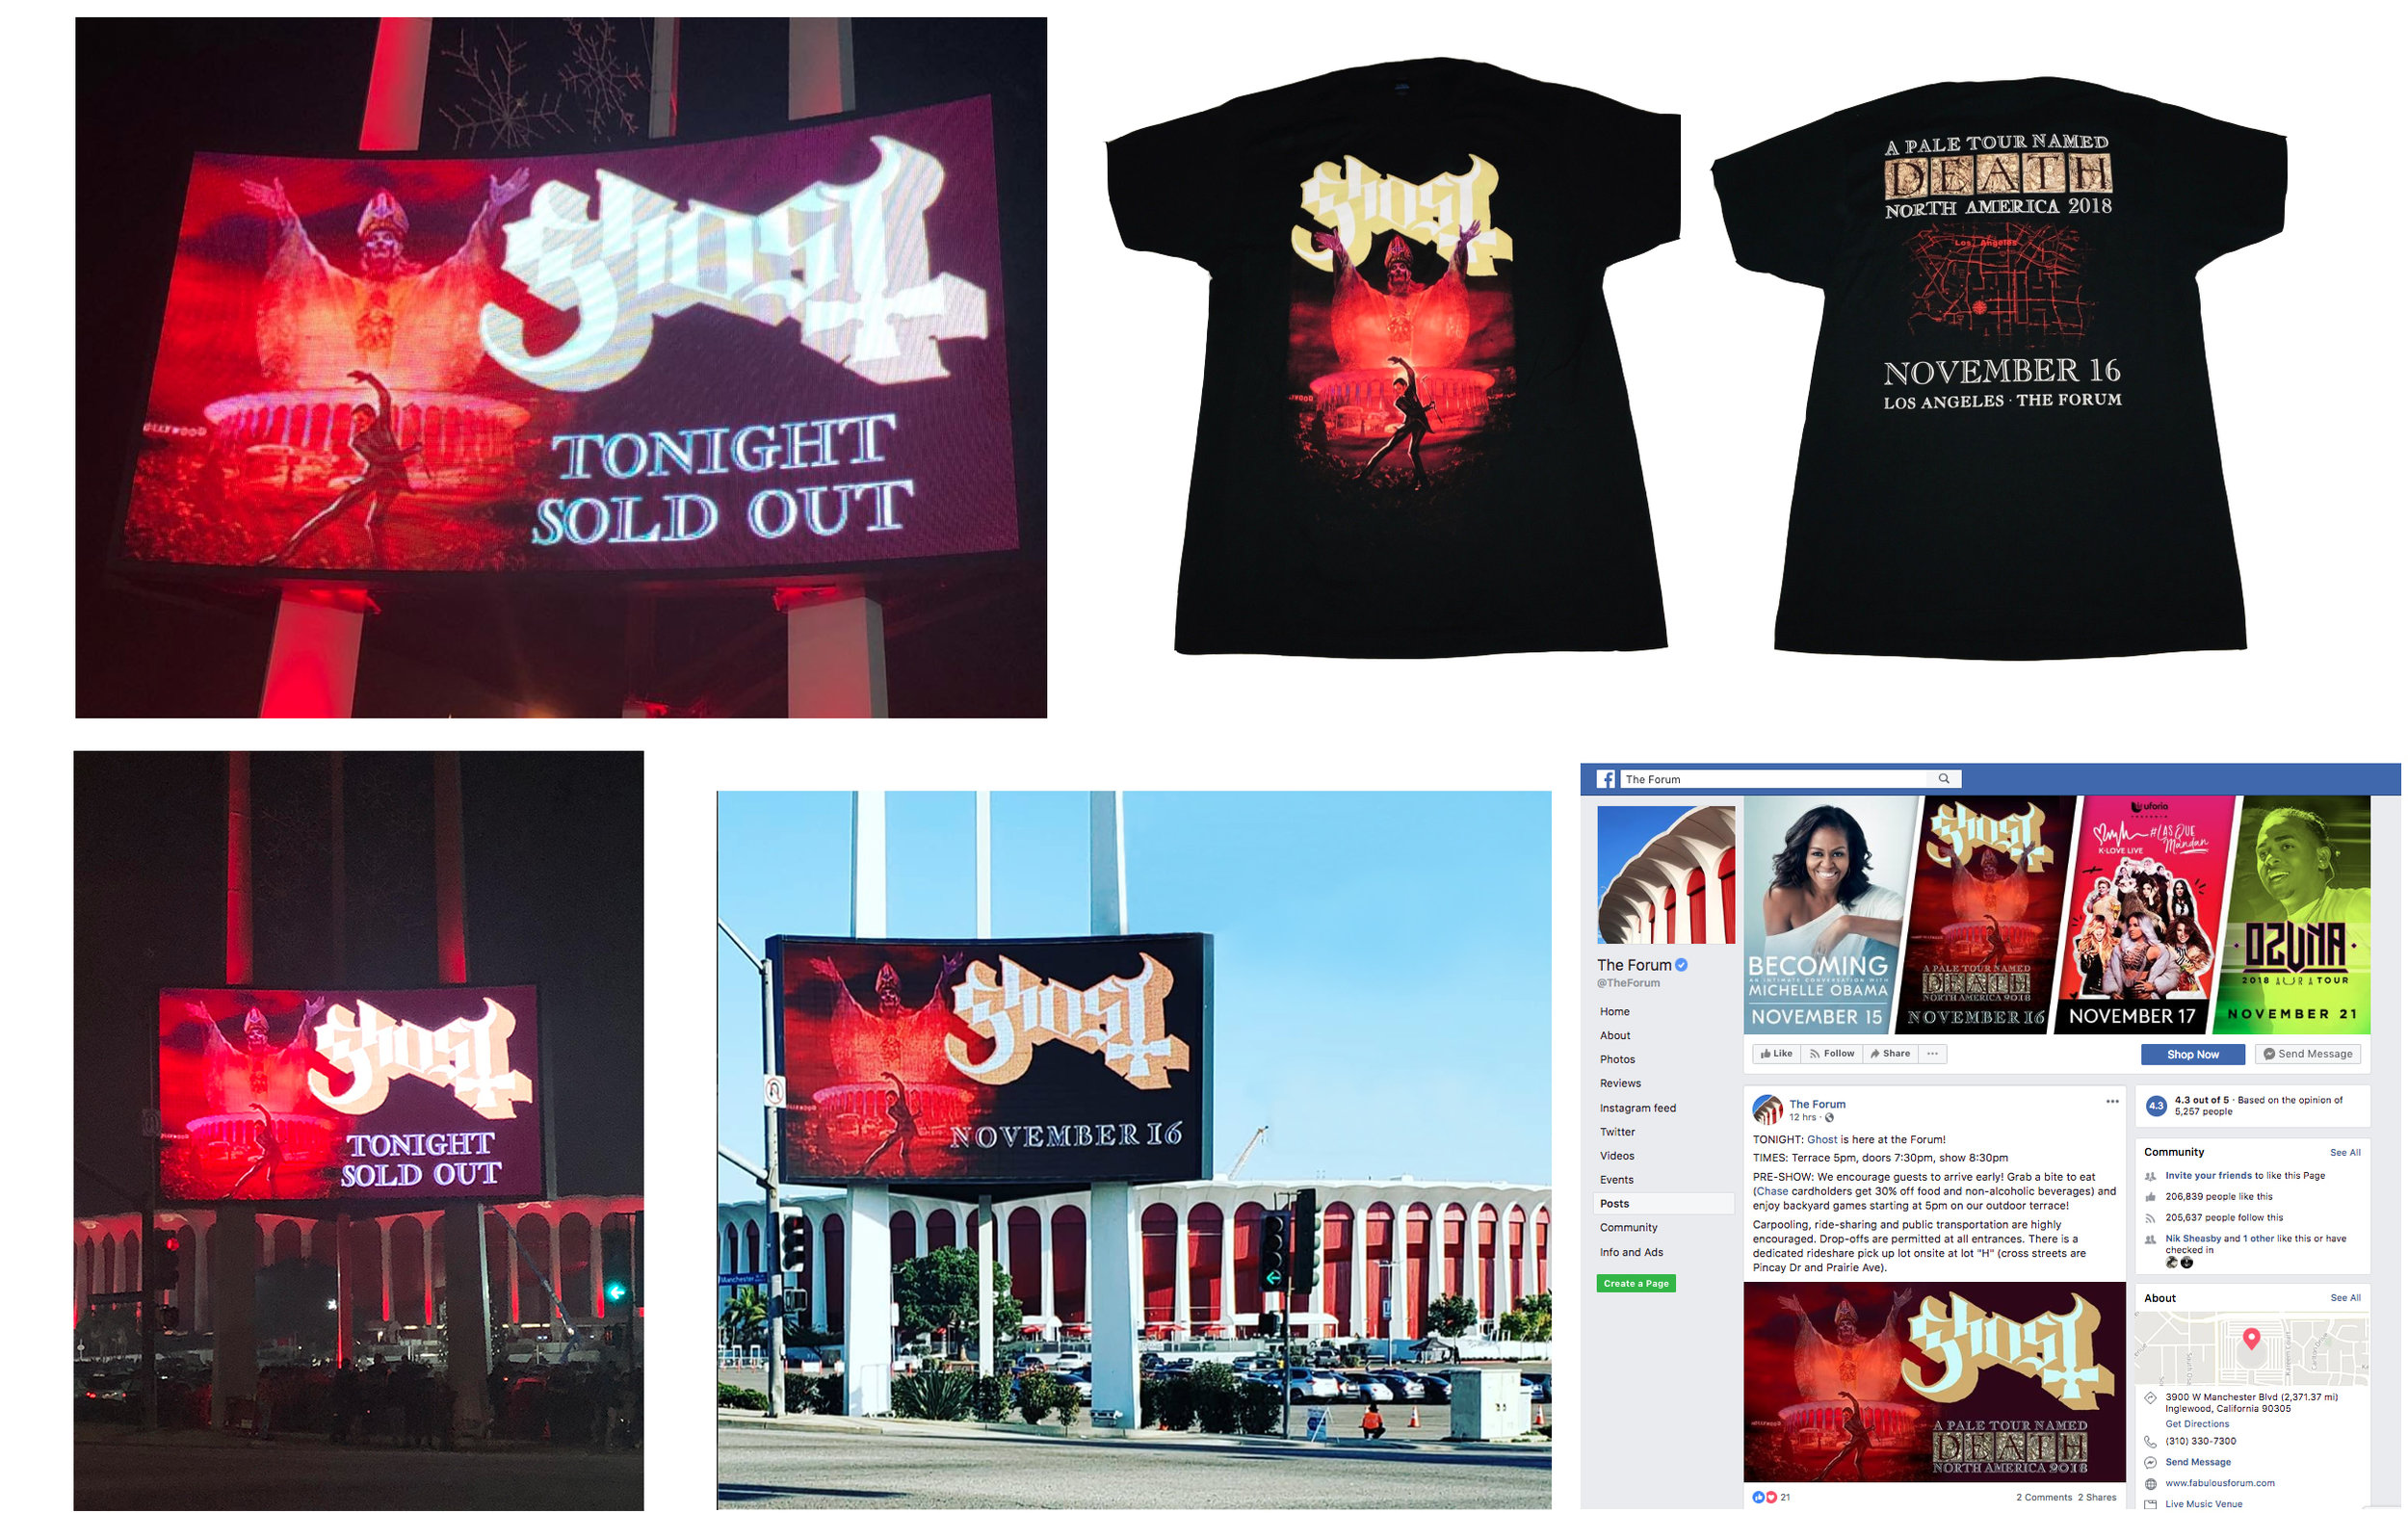 GHOST | Los Angeles Forum | November 16, 2018   Official limited edition concert t-shirt and billboard/marquee graphics